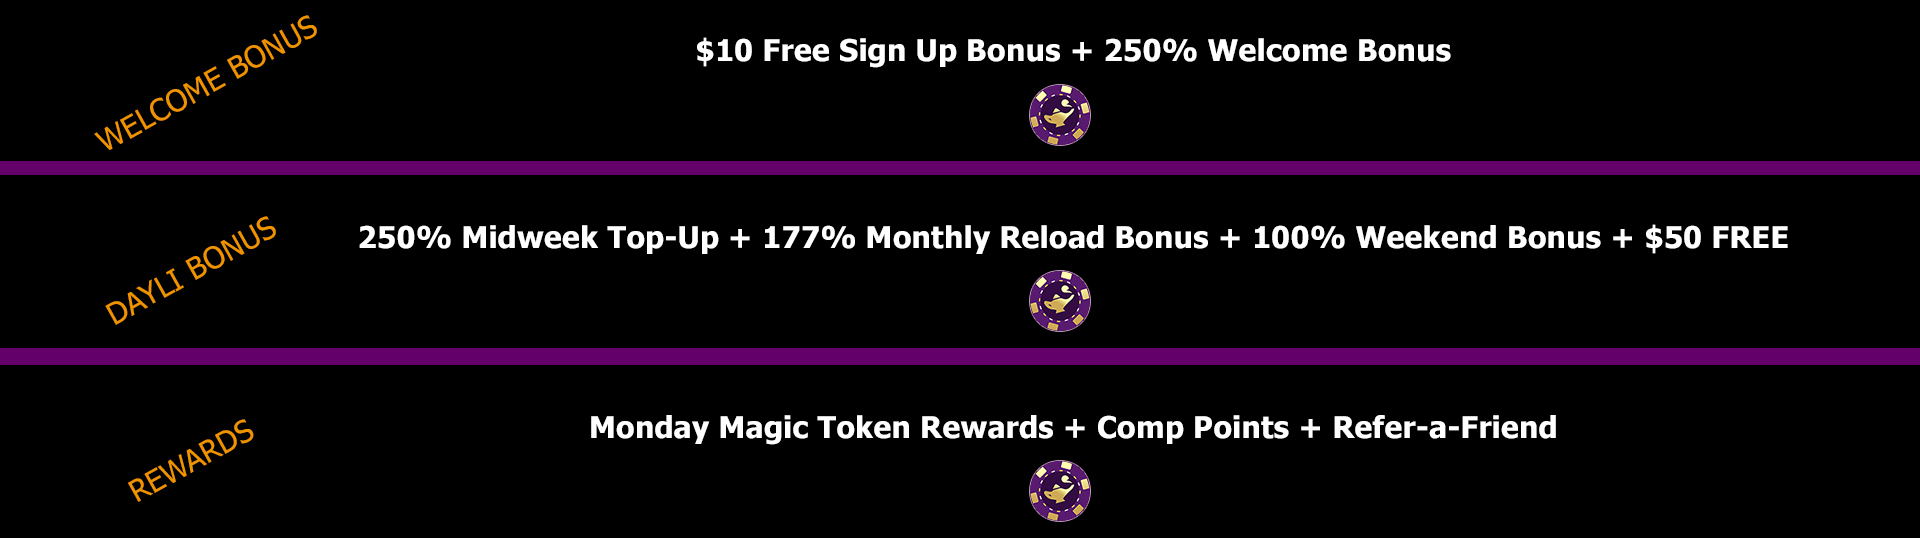 Desert nights casino bonuses.